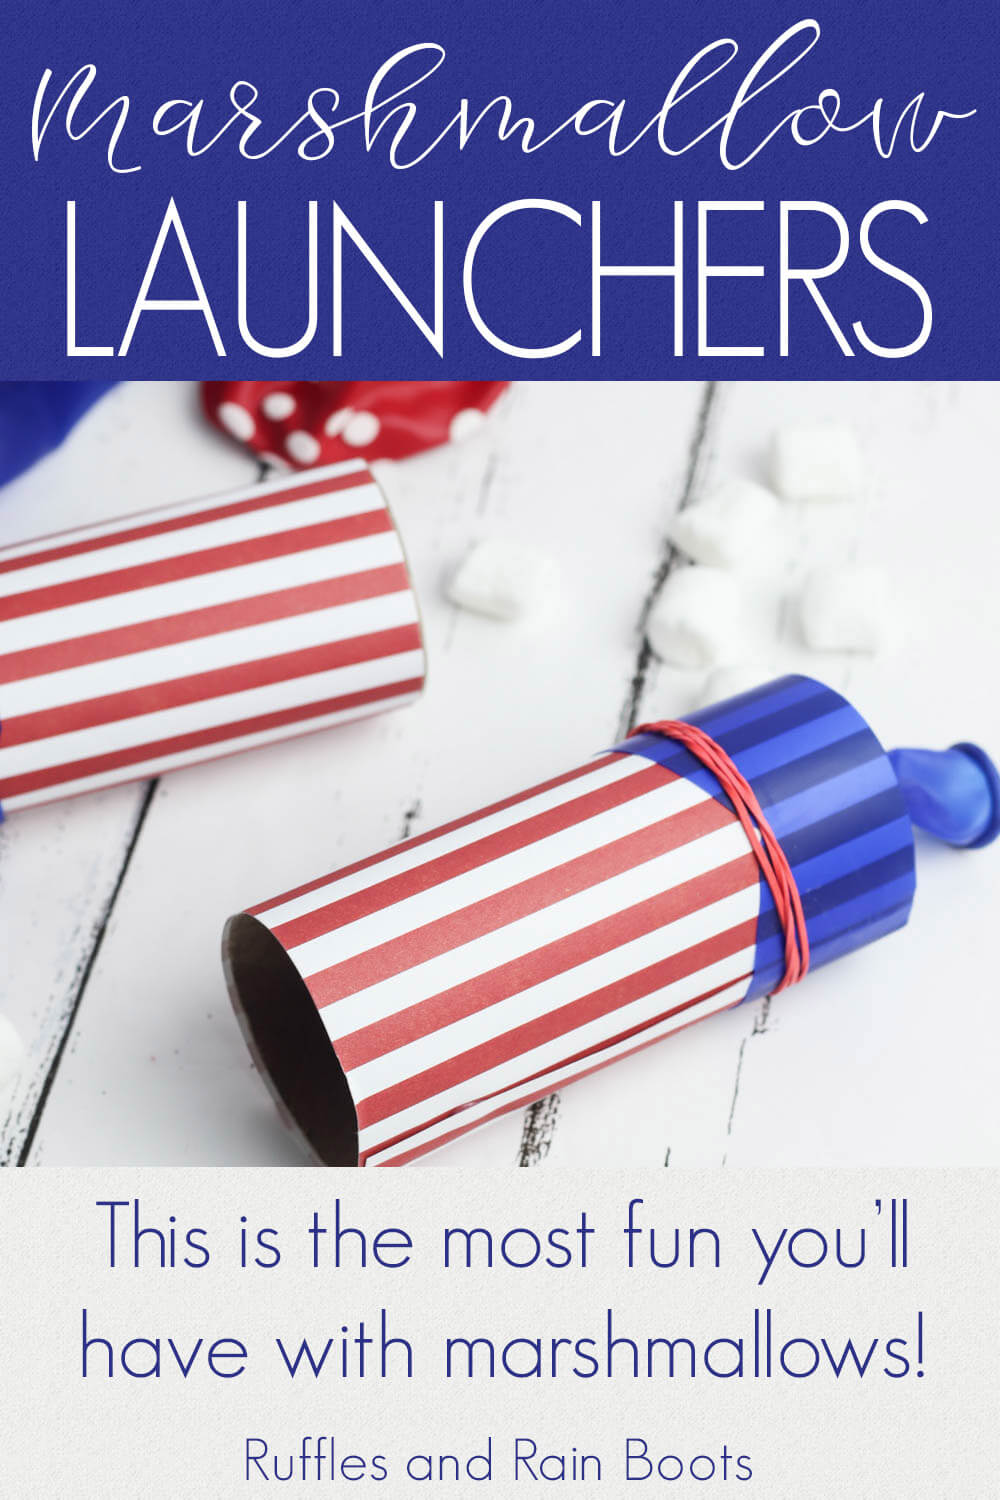 two marshmallow shooters launchers on a wooden board decorated for july 4th party with text which reads marshmallow launchers this is the most fun you'll have with marshmallows